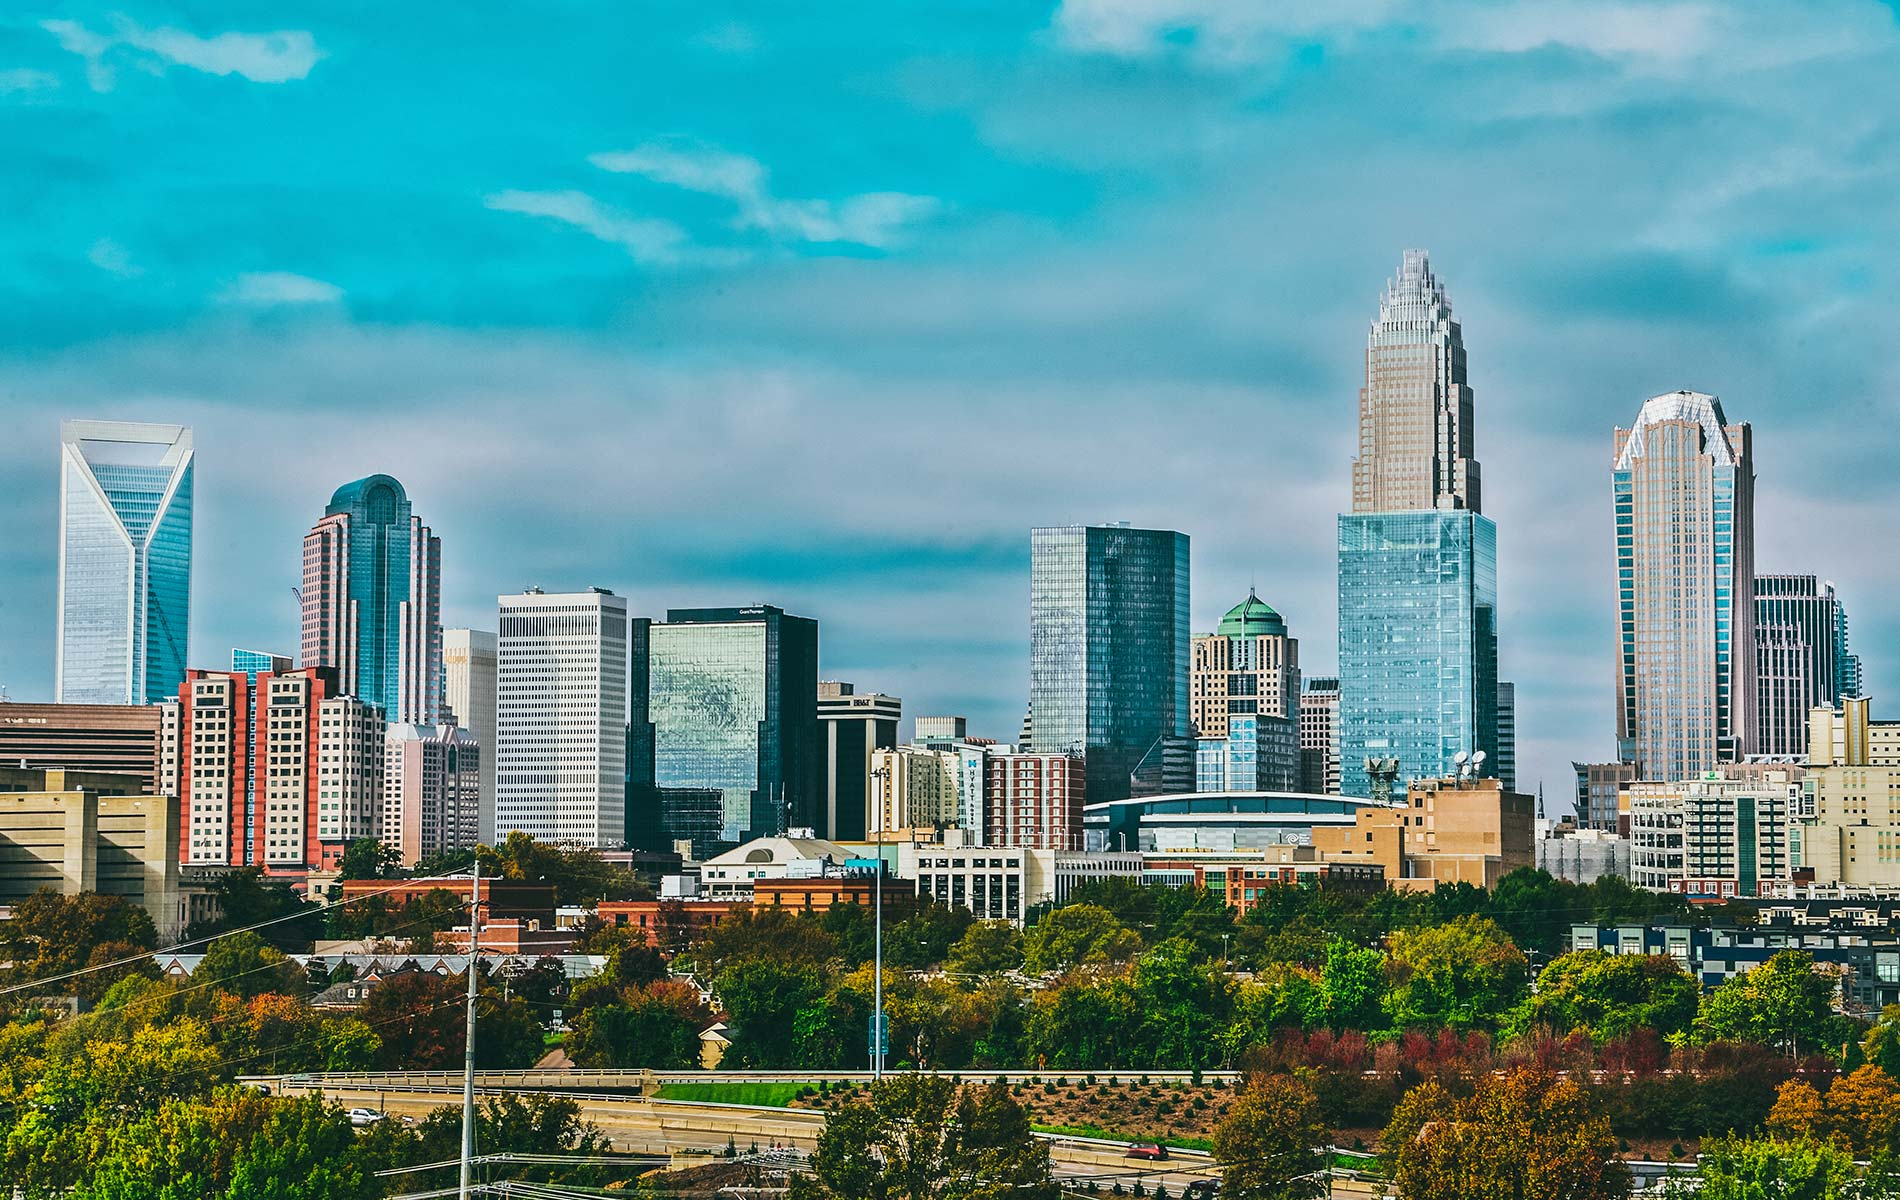 View of the downtown skyline of Charlotte, North Carolina during the day